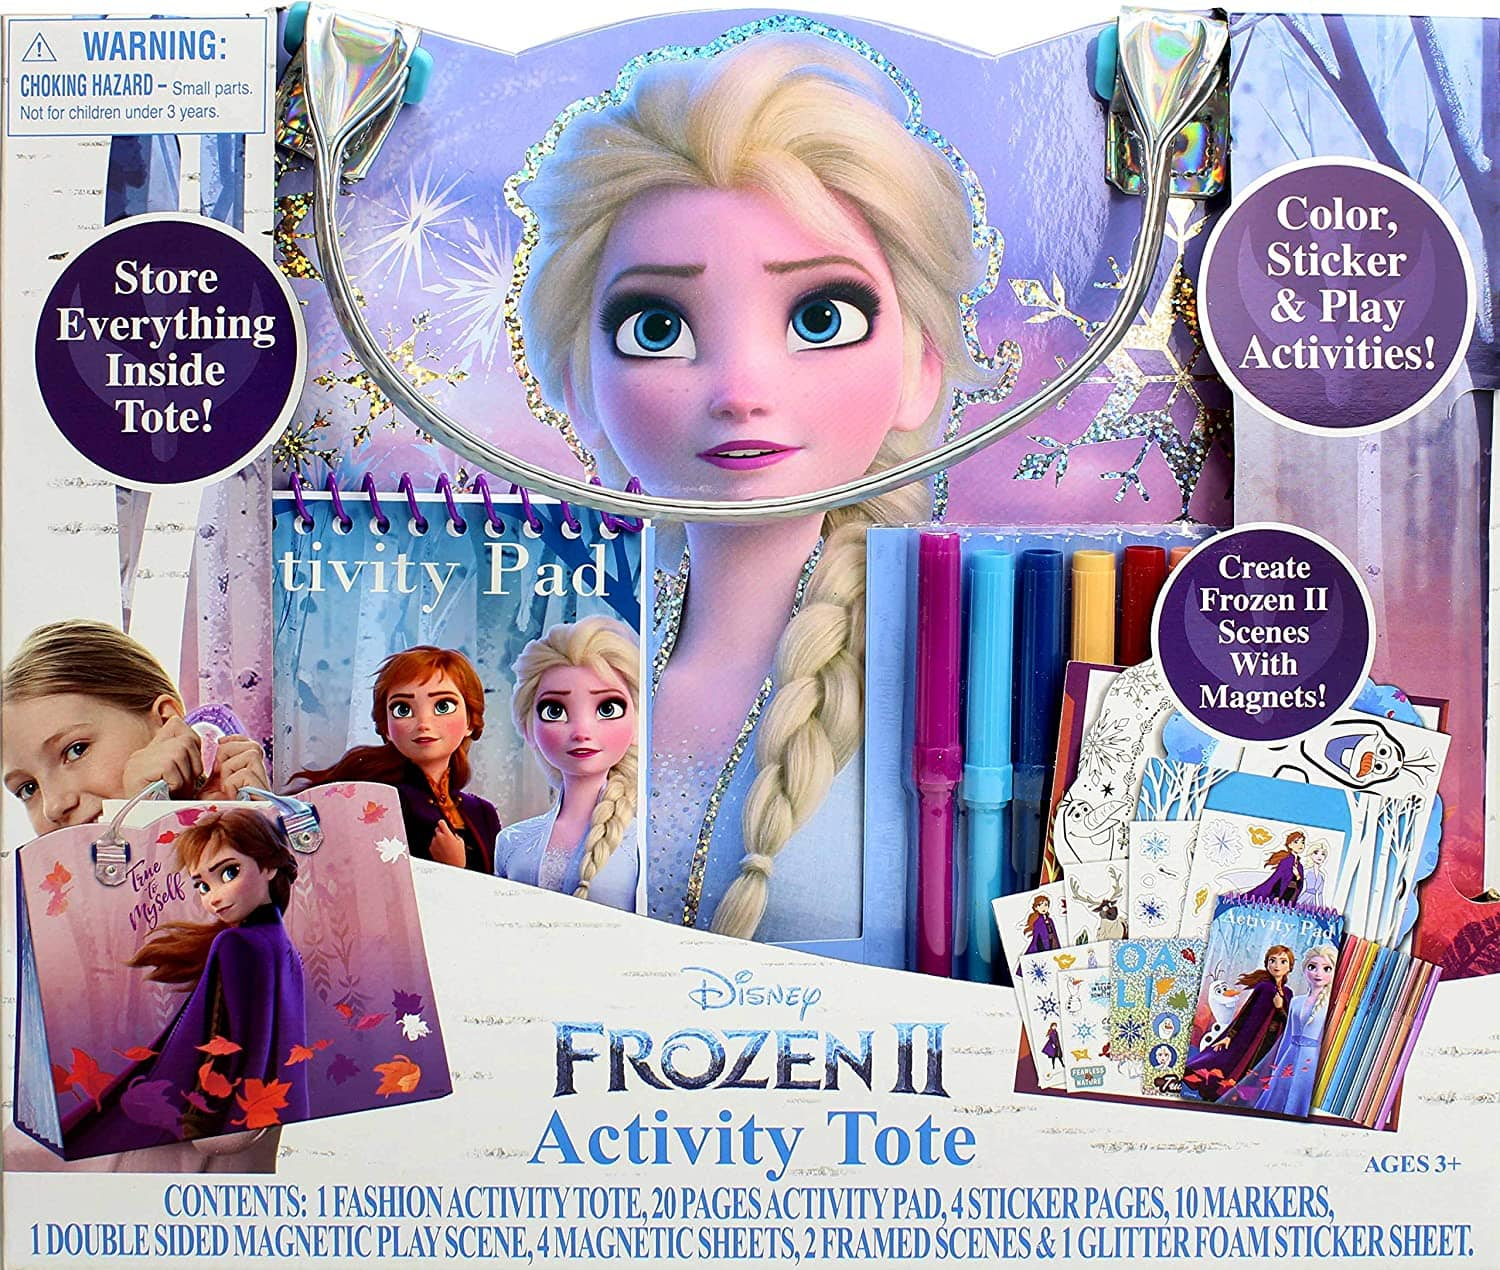 24-Pc Disney Frozen 2 Activity Tote $13.45 + Free Shipping w/ Amazon Prime or Orders $25+